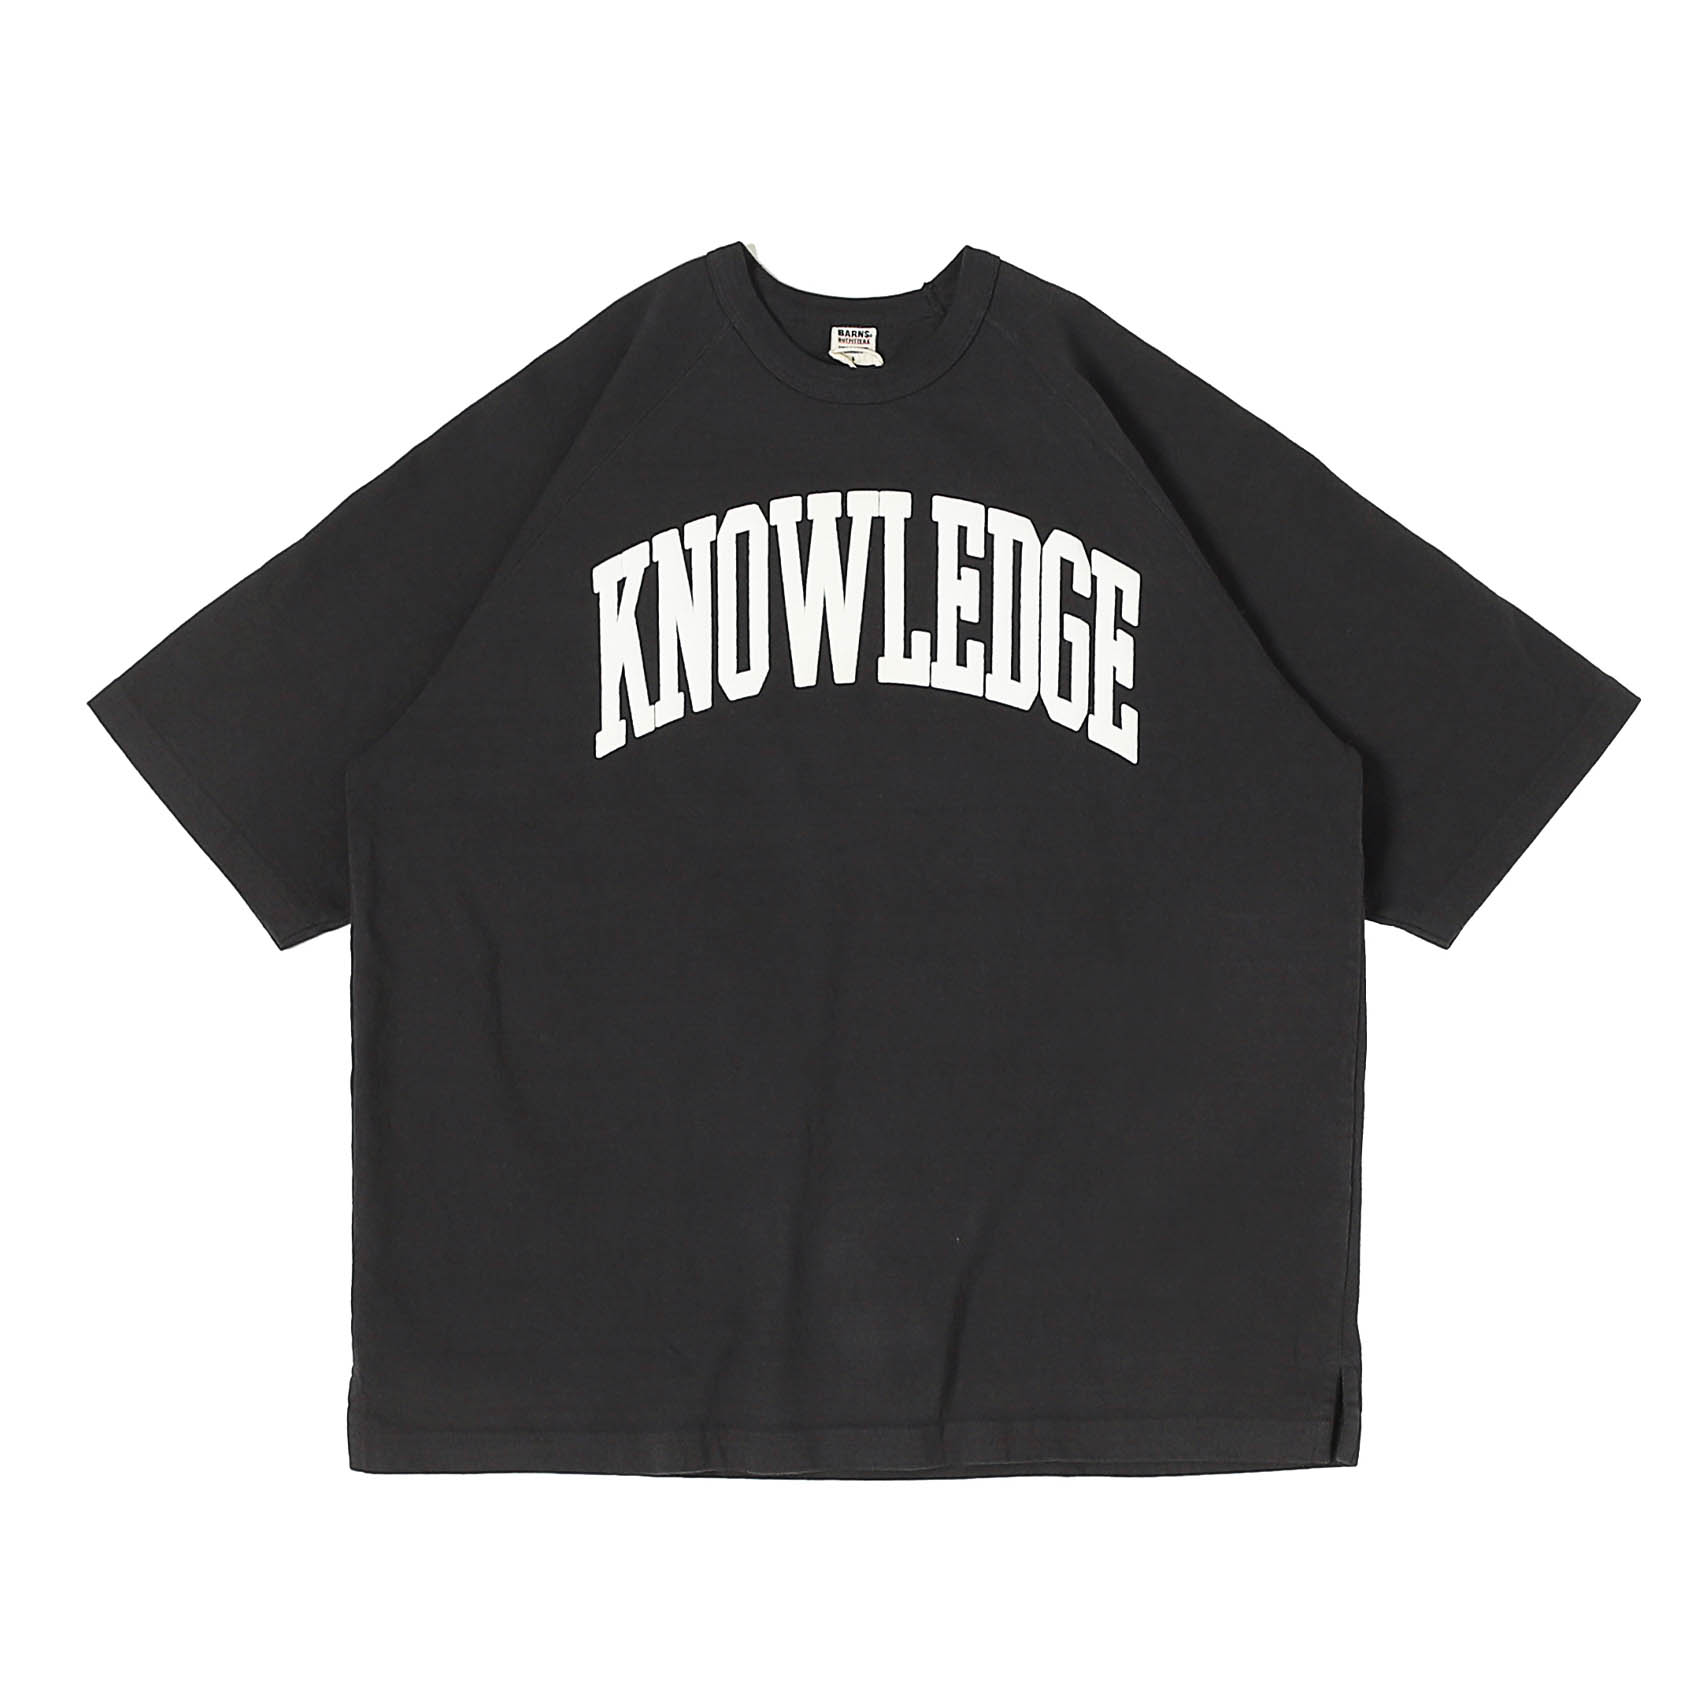 S/S PRINTED TEE - KNOWLEDGE BLACK